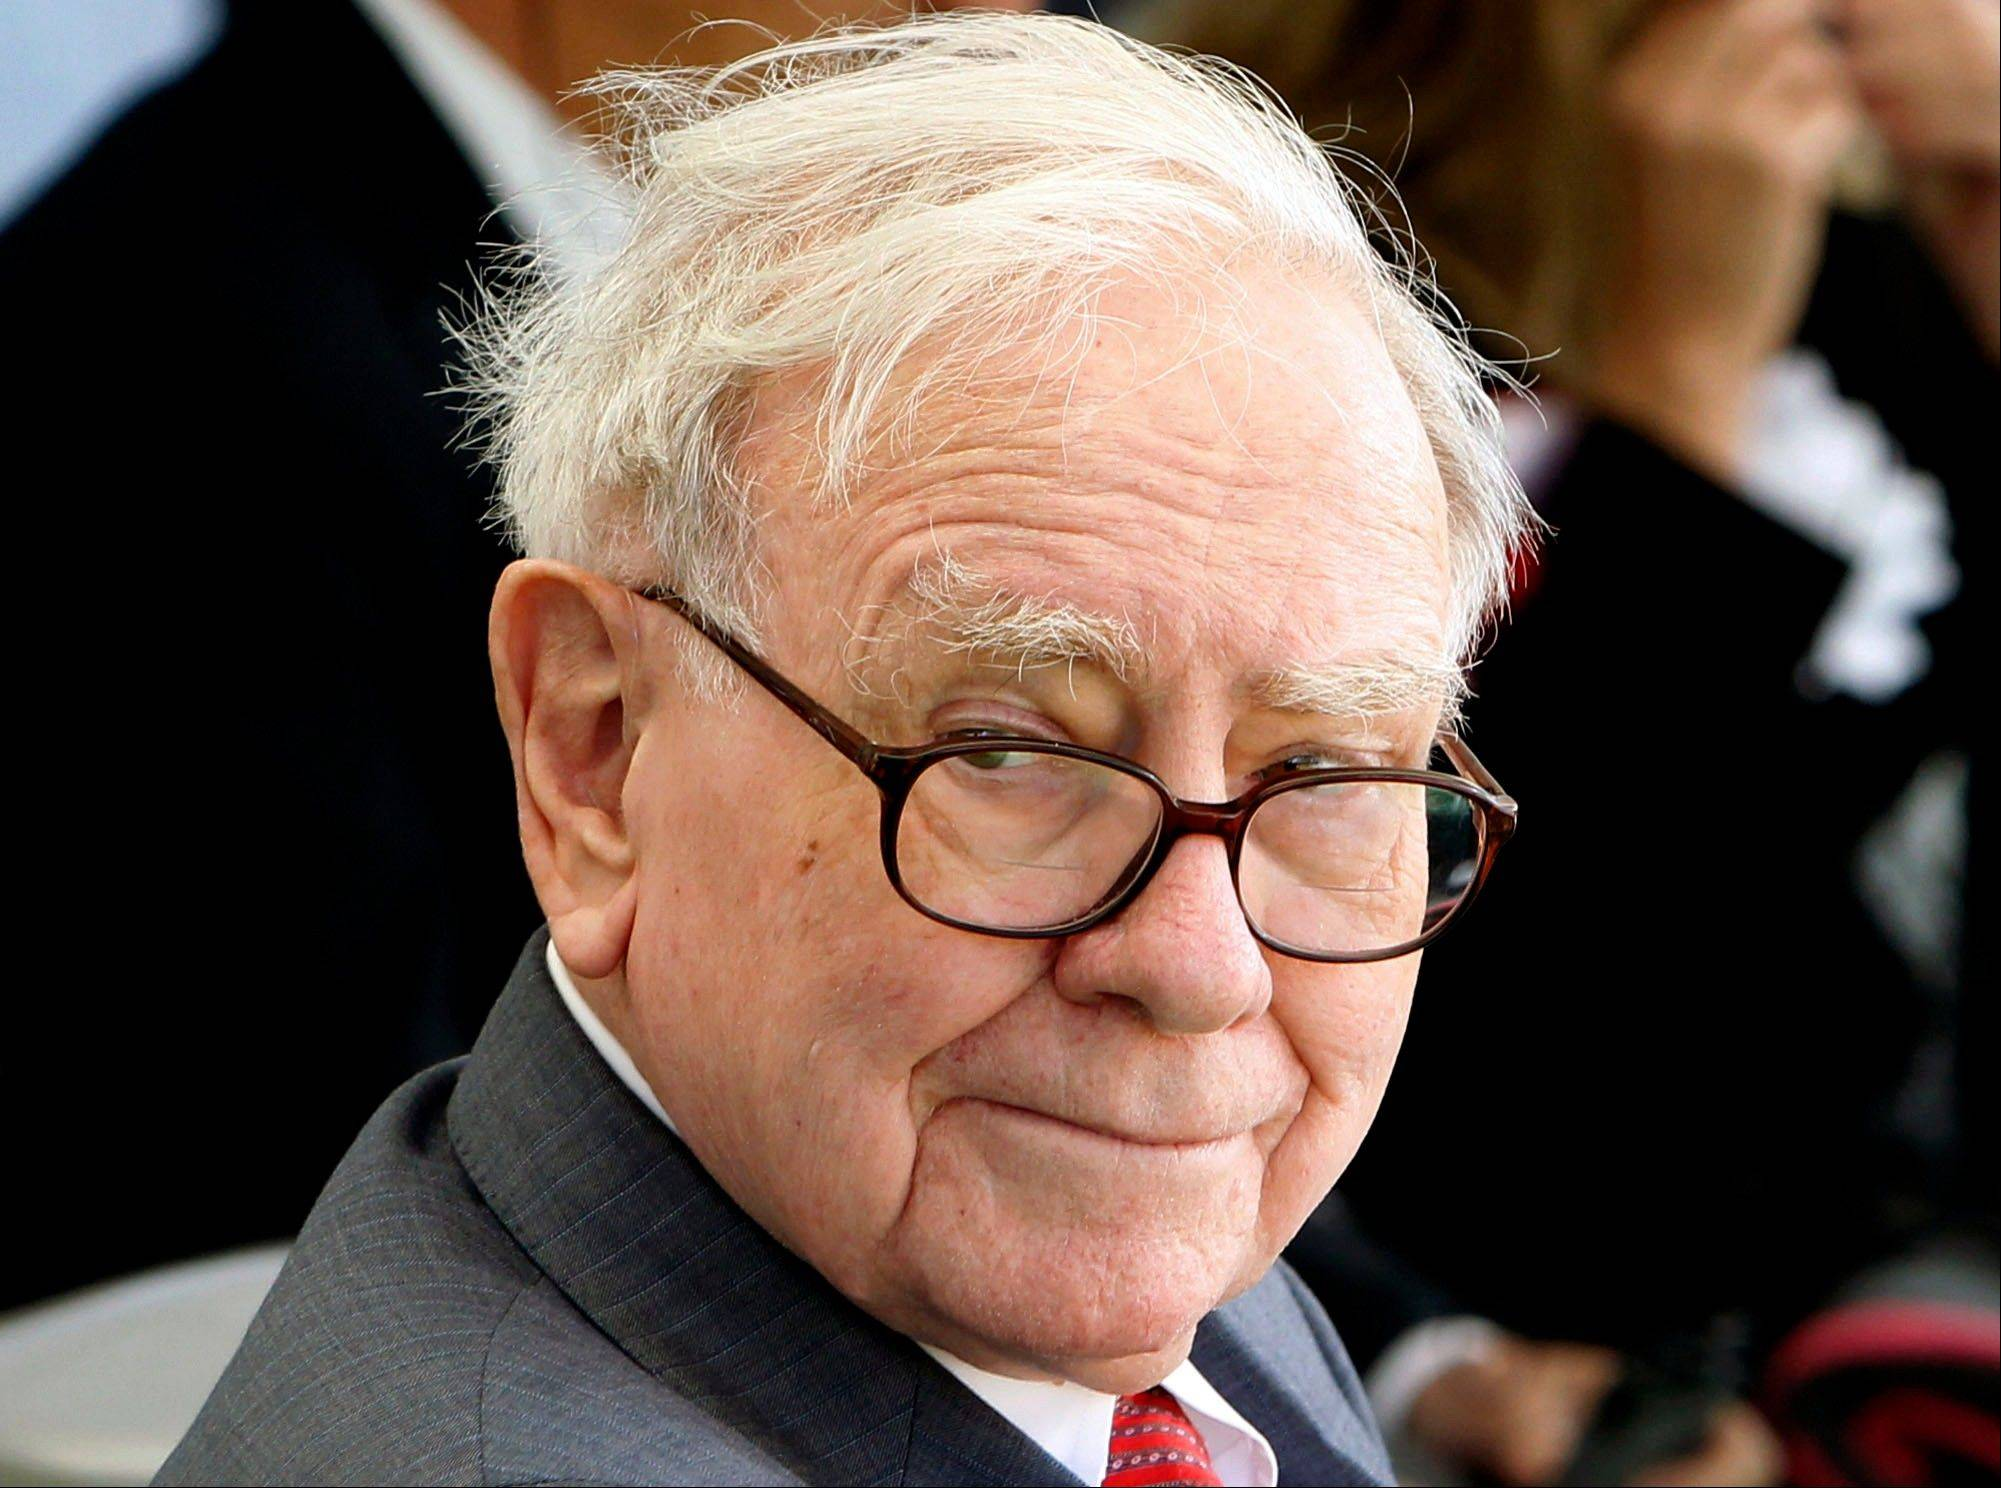 Warren Buffett's birthday this week was good news for Berkshire Hathaway investors who could celebrate another year of the Oracle of Omaha's leadership. But the milestone also reminded shareholders they need to think about who will run the evolving company after Buffett is gone.